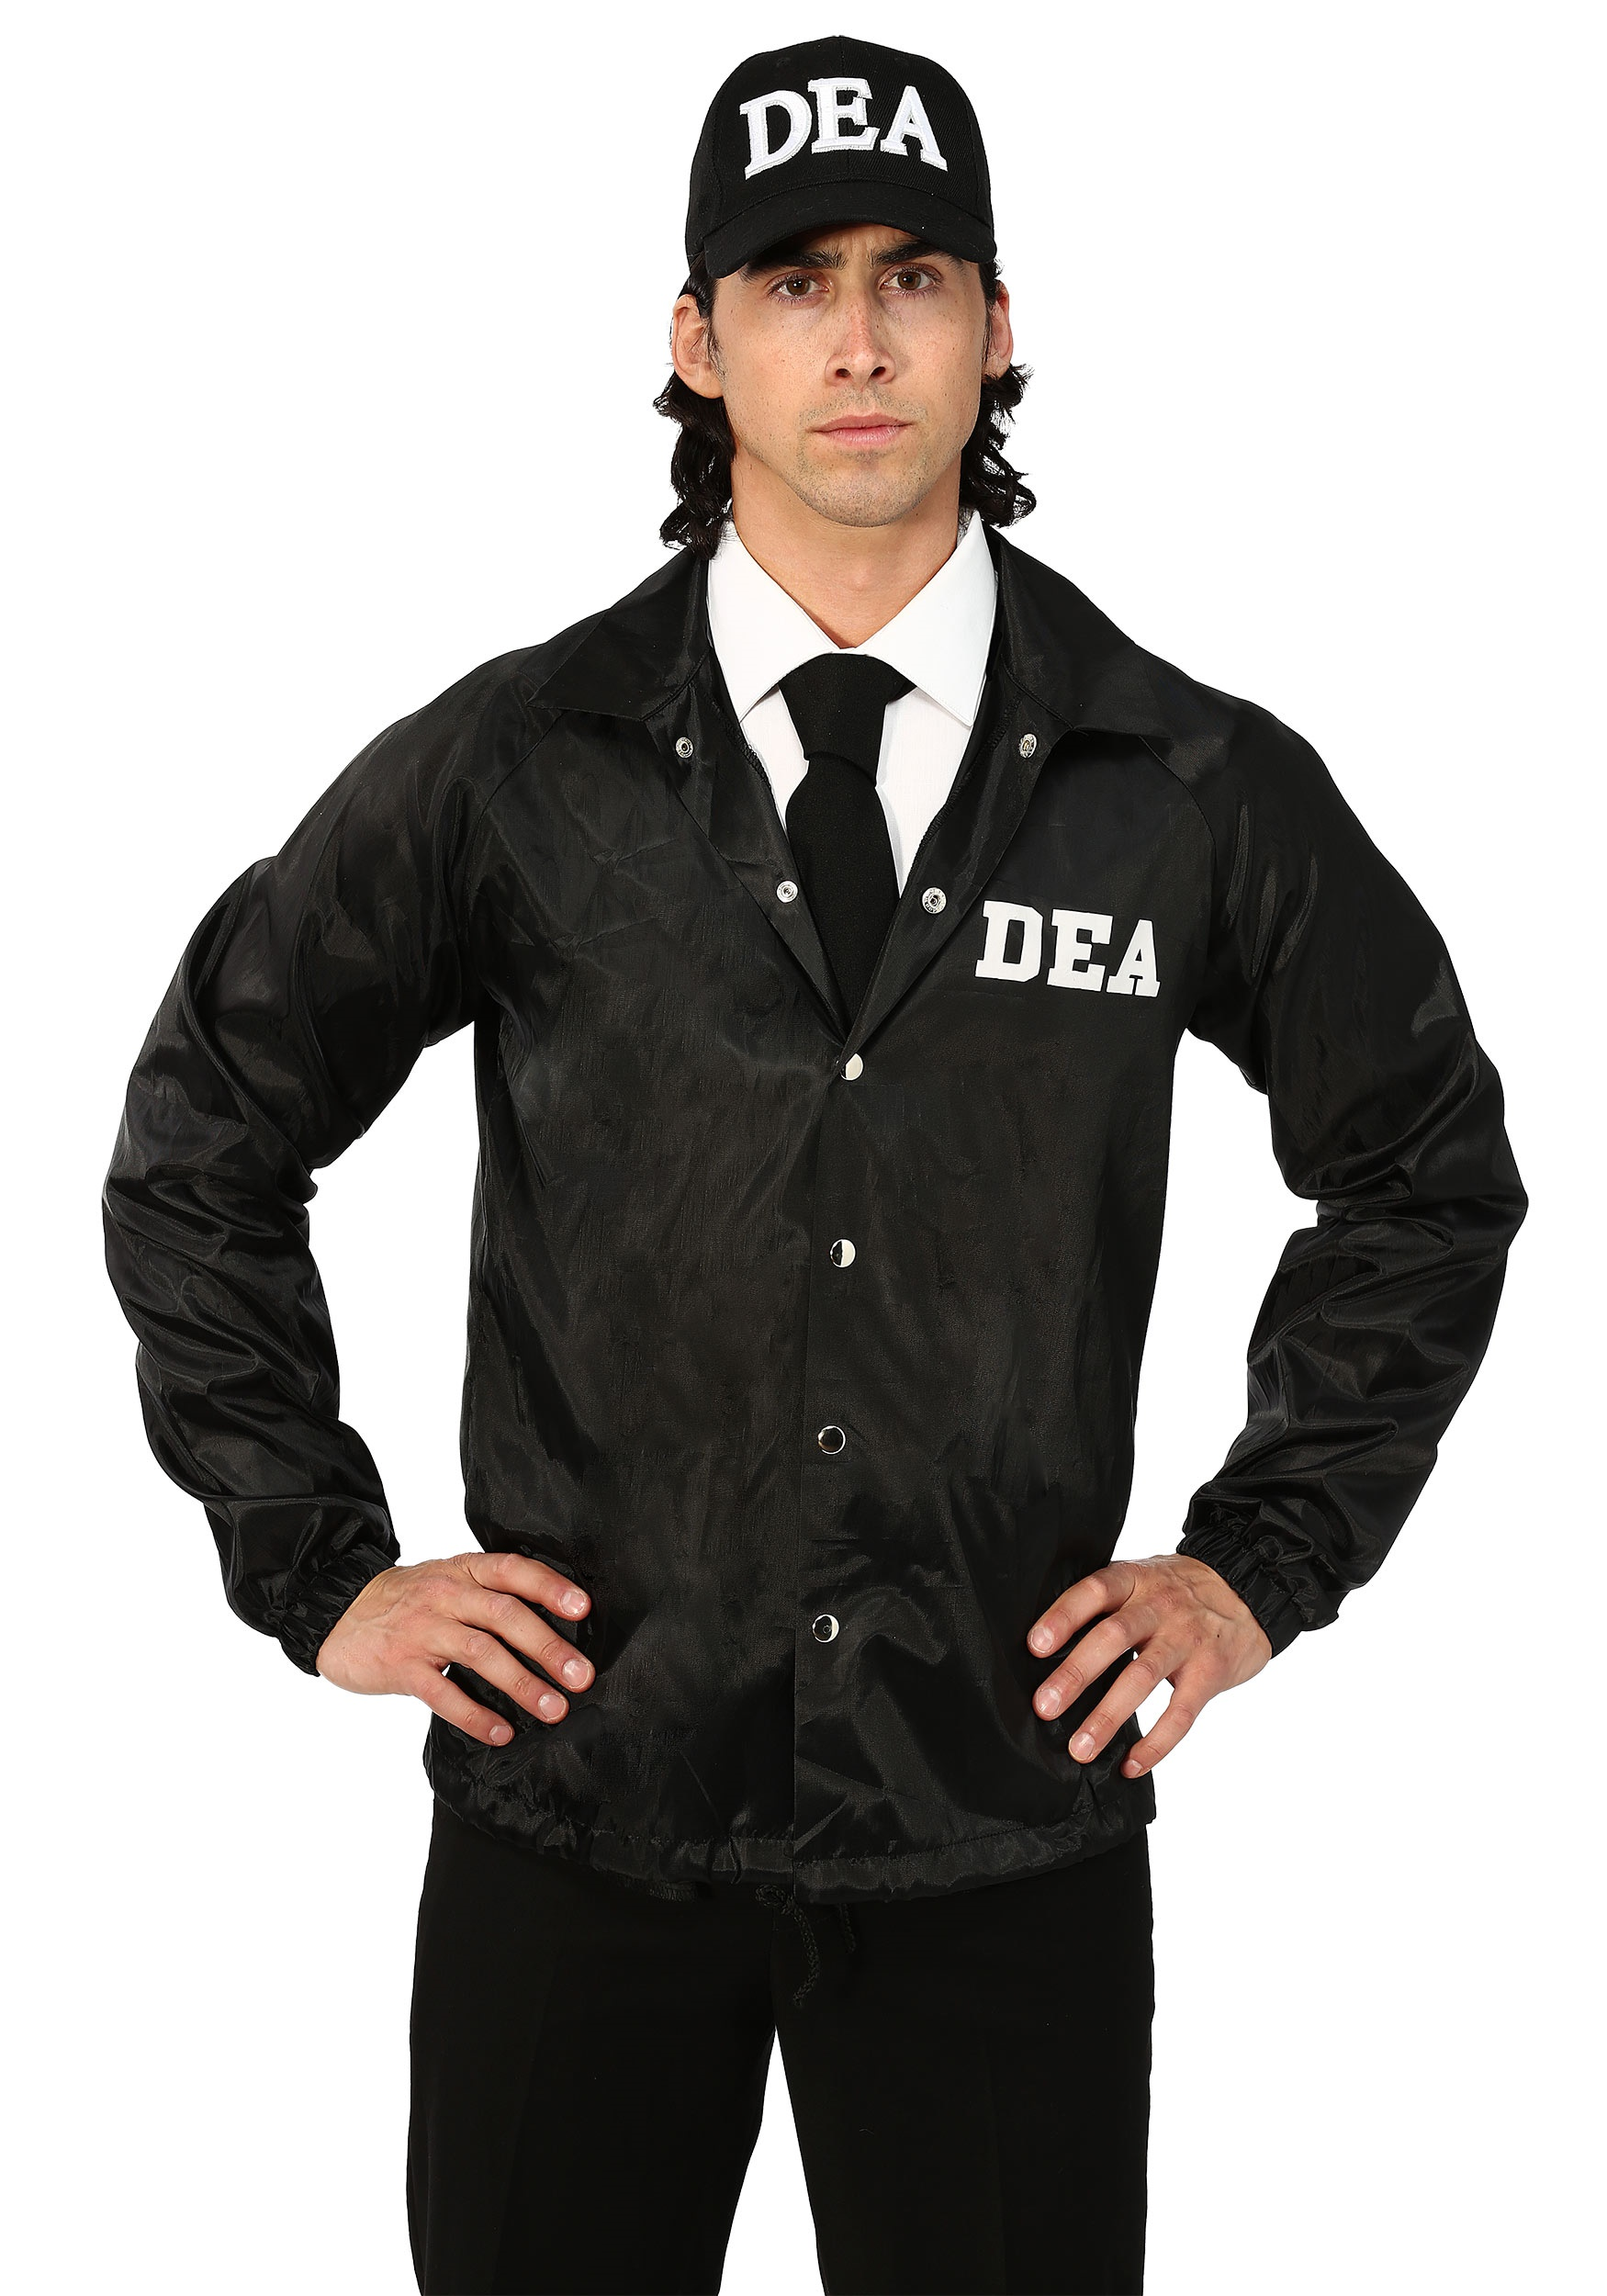 ... Adult DEA Agent Costume  sc 1 st  Halloween Costumes & DEA Agent Costume for Adults